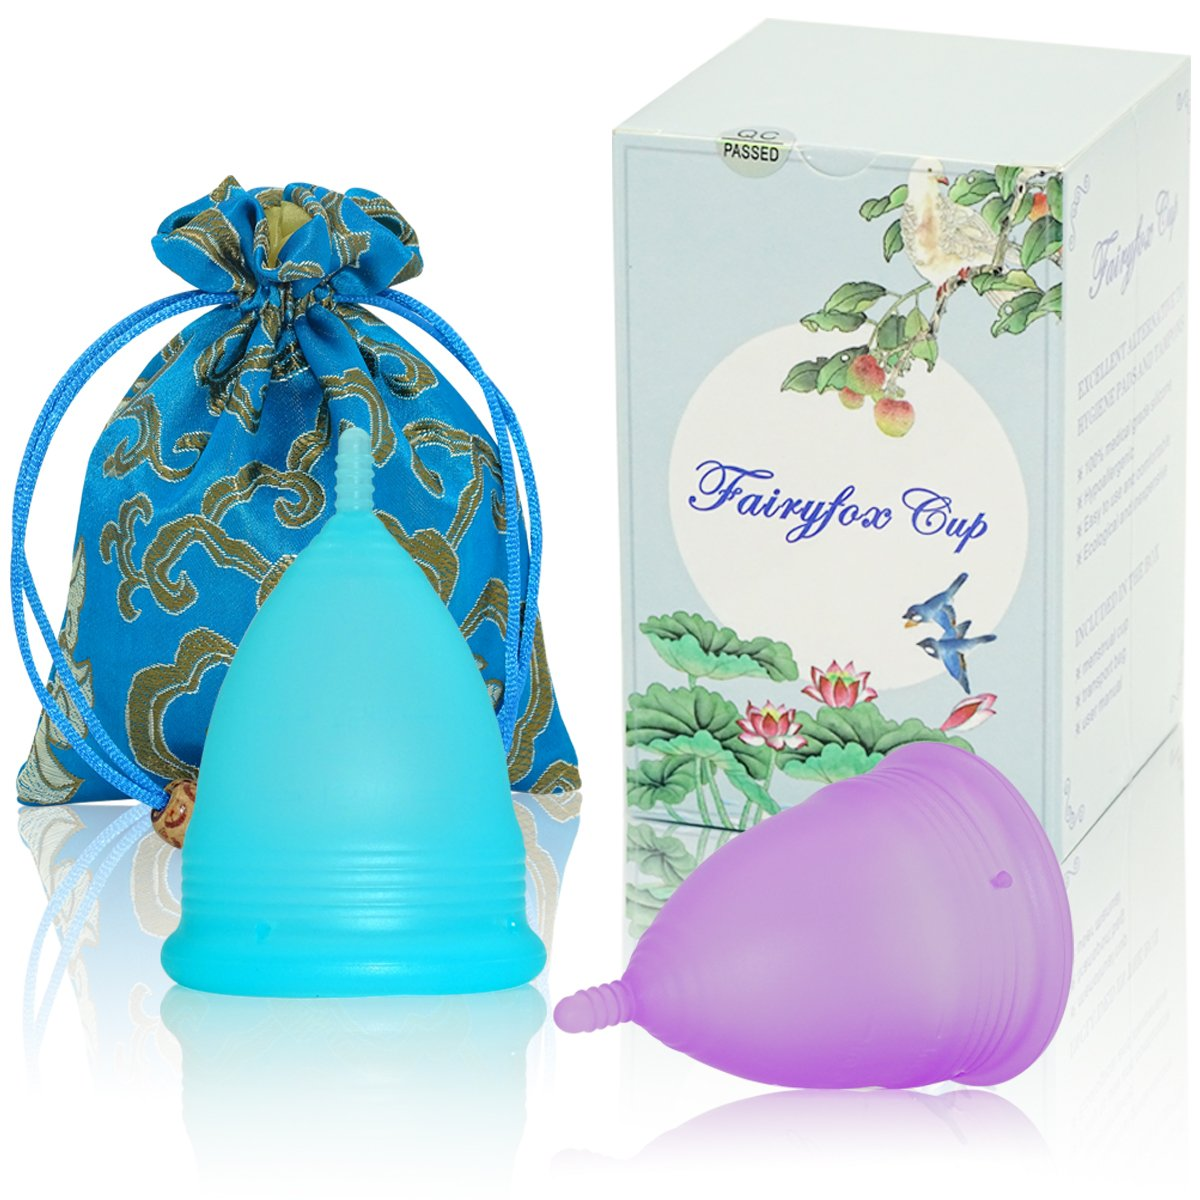 Menstrual Cup by Fairyfox Set of 2 Periods Kit with Silk Brocade Bag - Soft Comfort Fit, Reusable Menstrual Cups (Large, Blue&Purple)